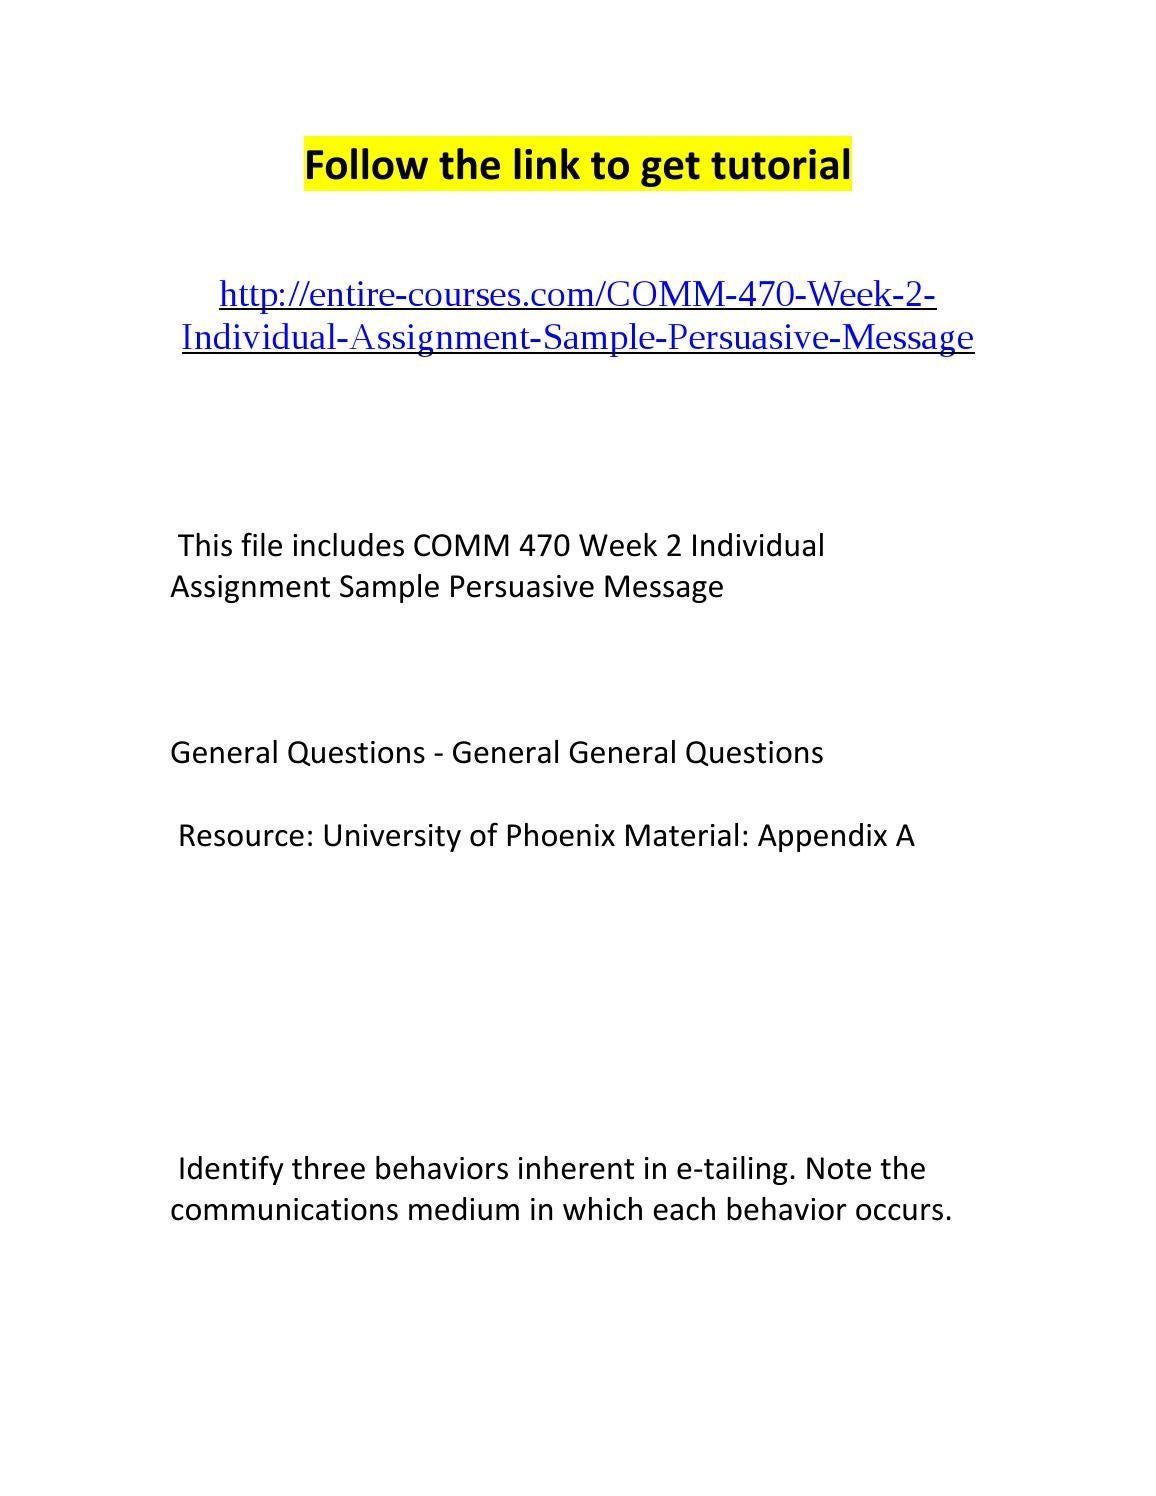 COMM 470 Week 2 Individual Assignment Sample Persuasive Message